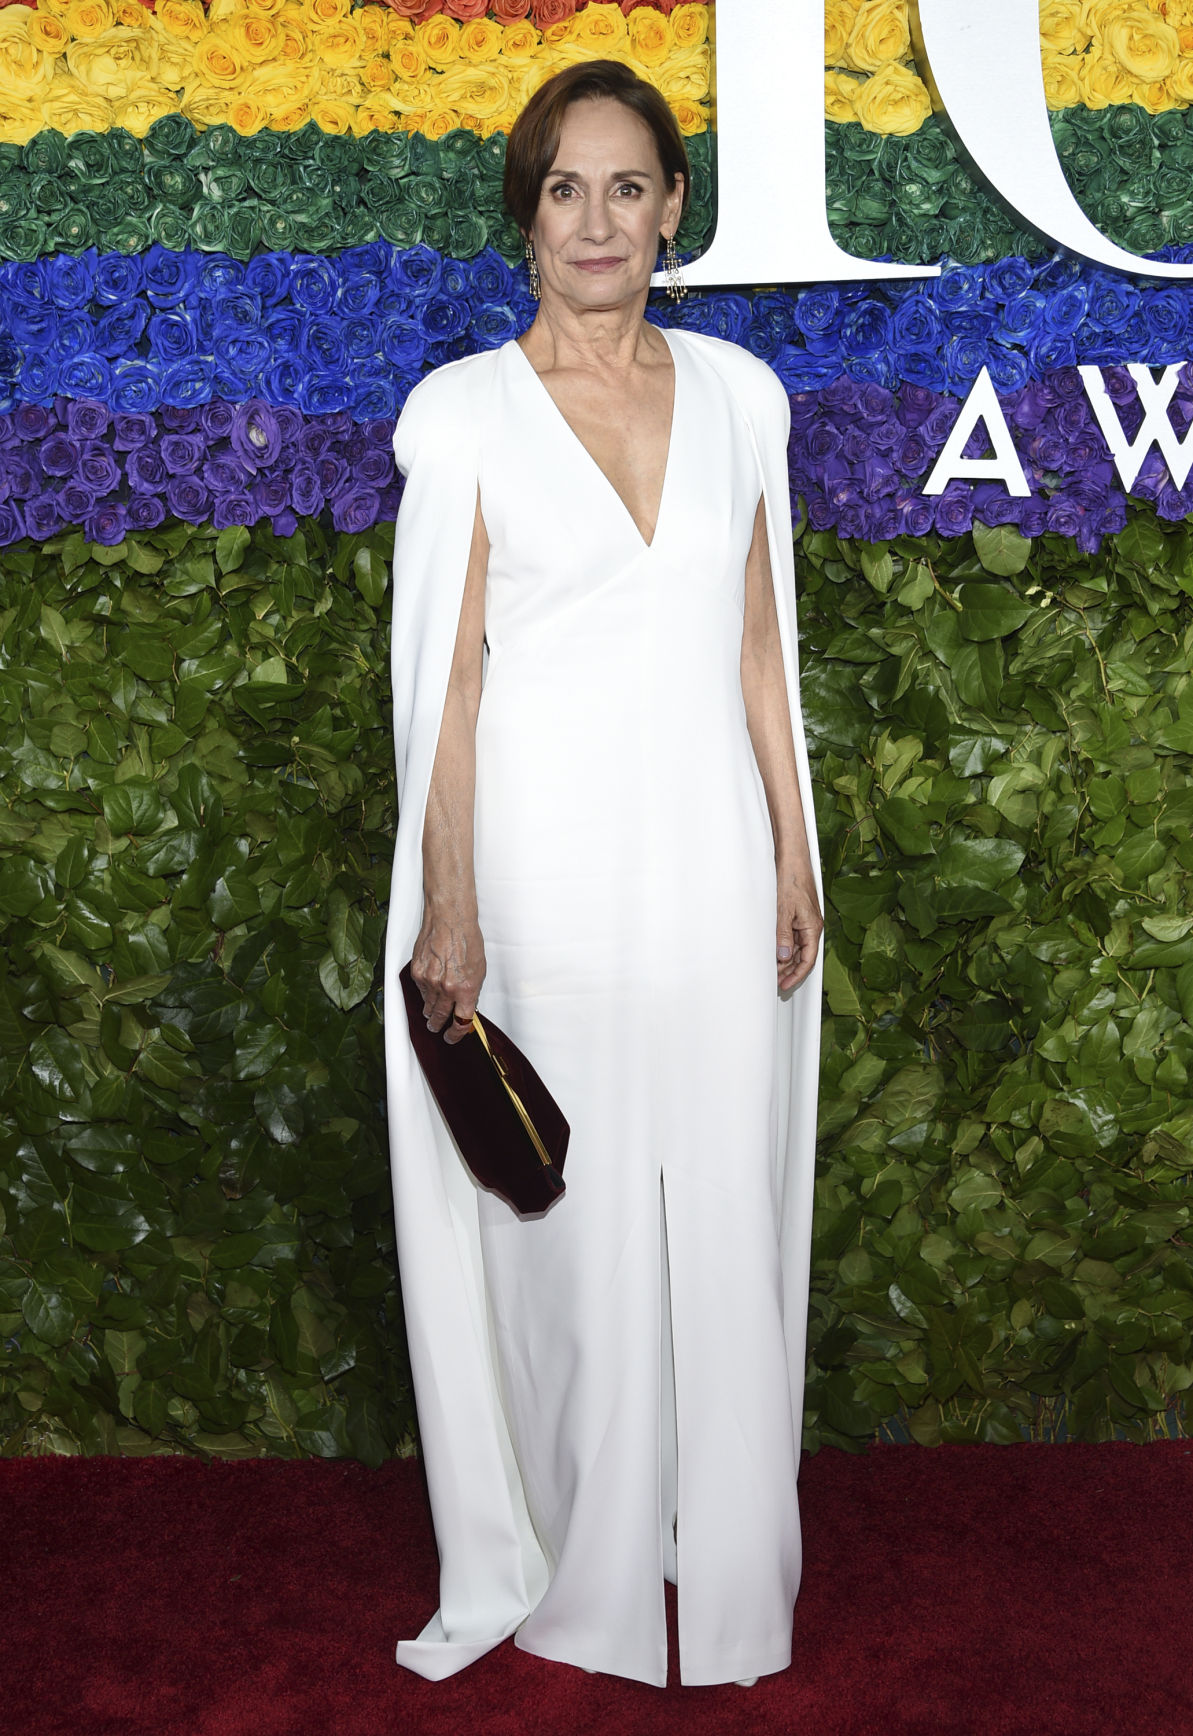 Photos: Scenes from the red carpet at the 2019 Tony Awards